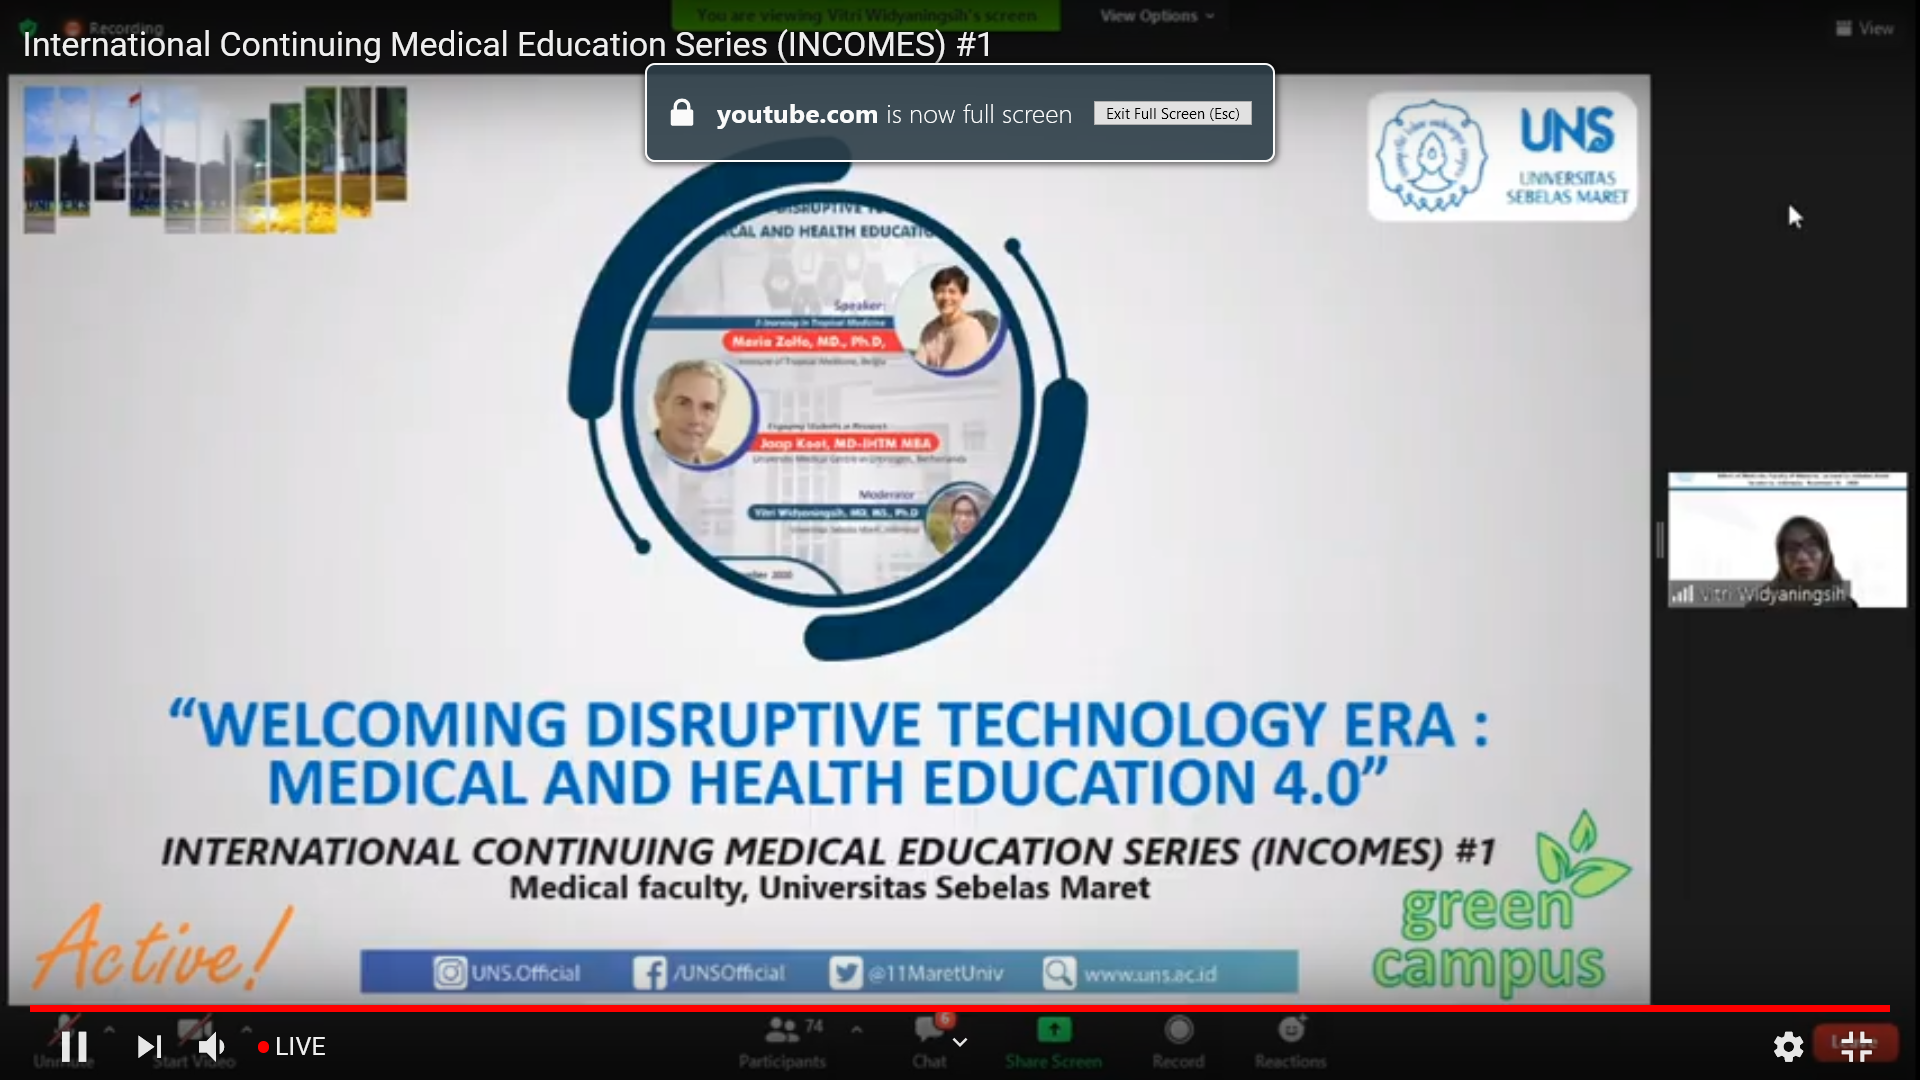 International Continuing Medical Education Series (INCOMES) #1